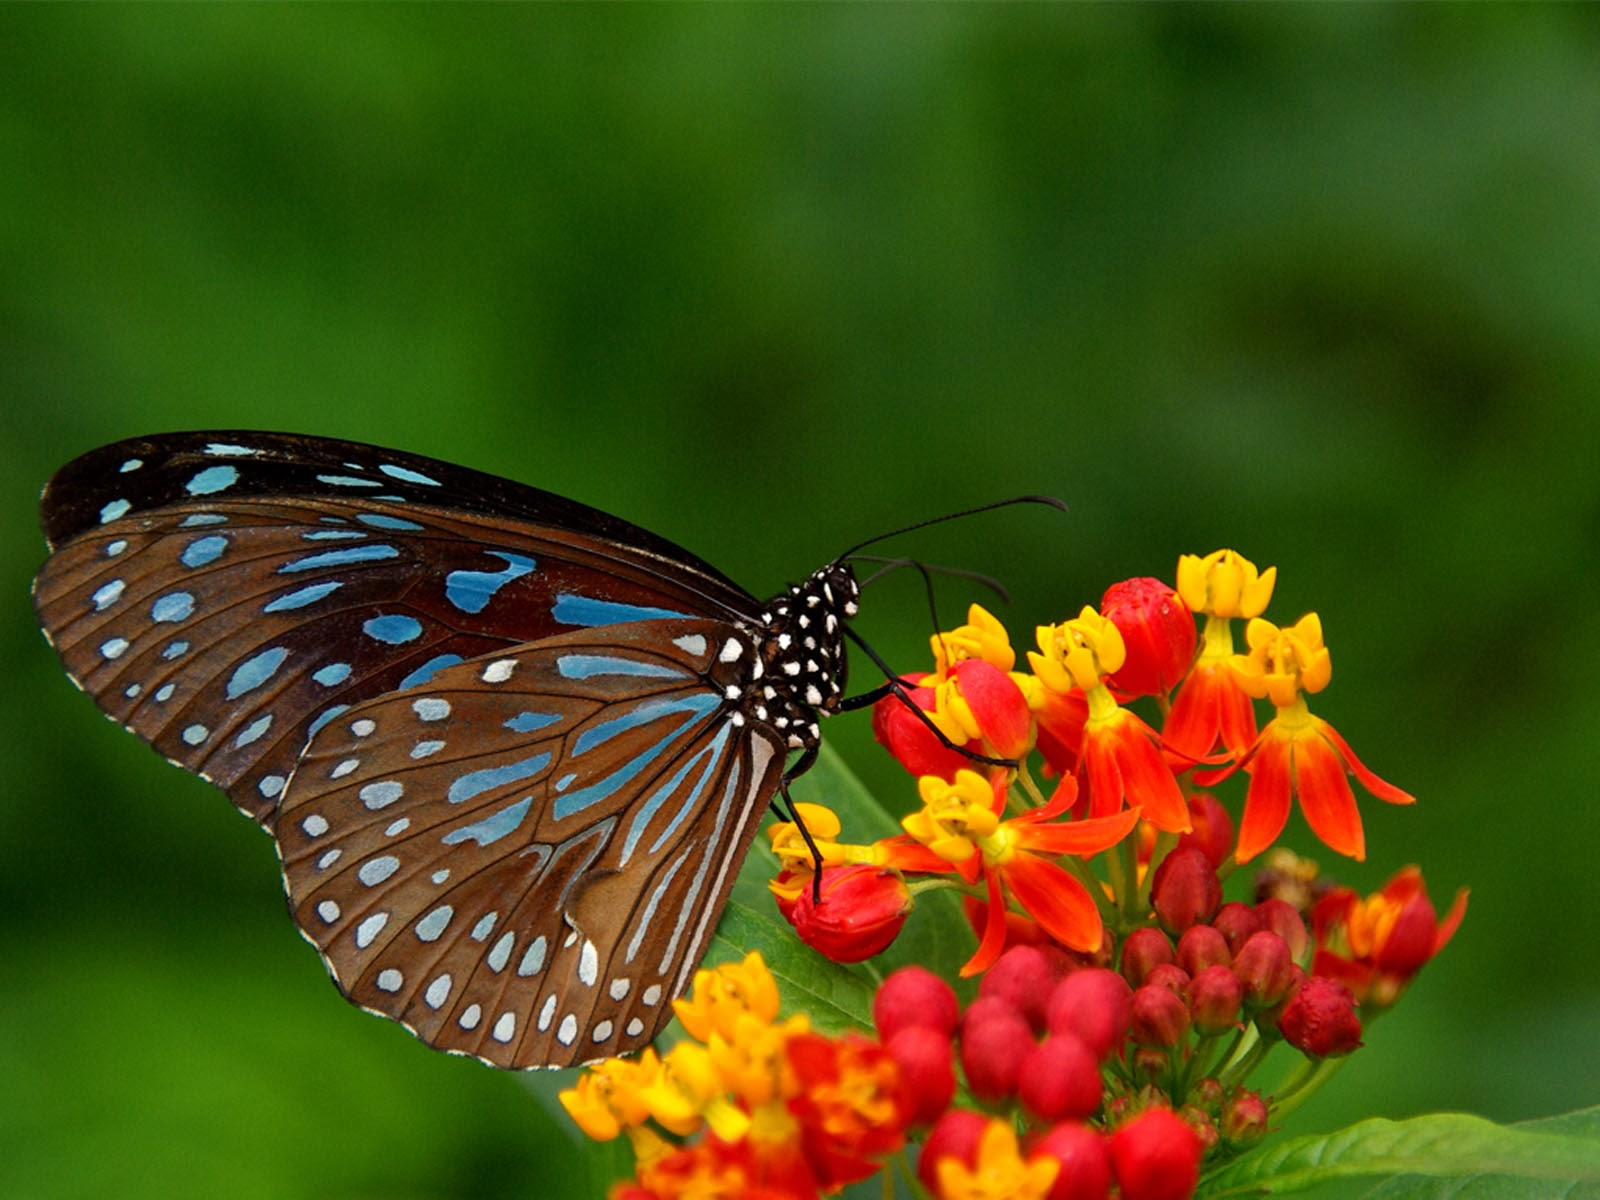 , Butterfly DesktopBackgrounds, Butterfly Wallpapers, Butterfly